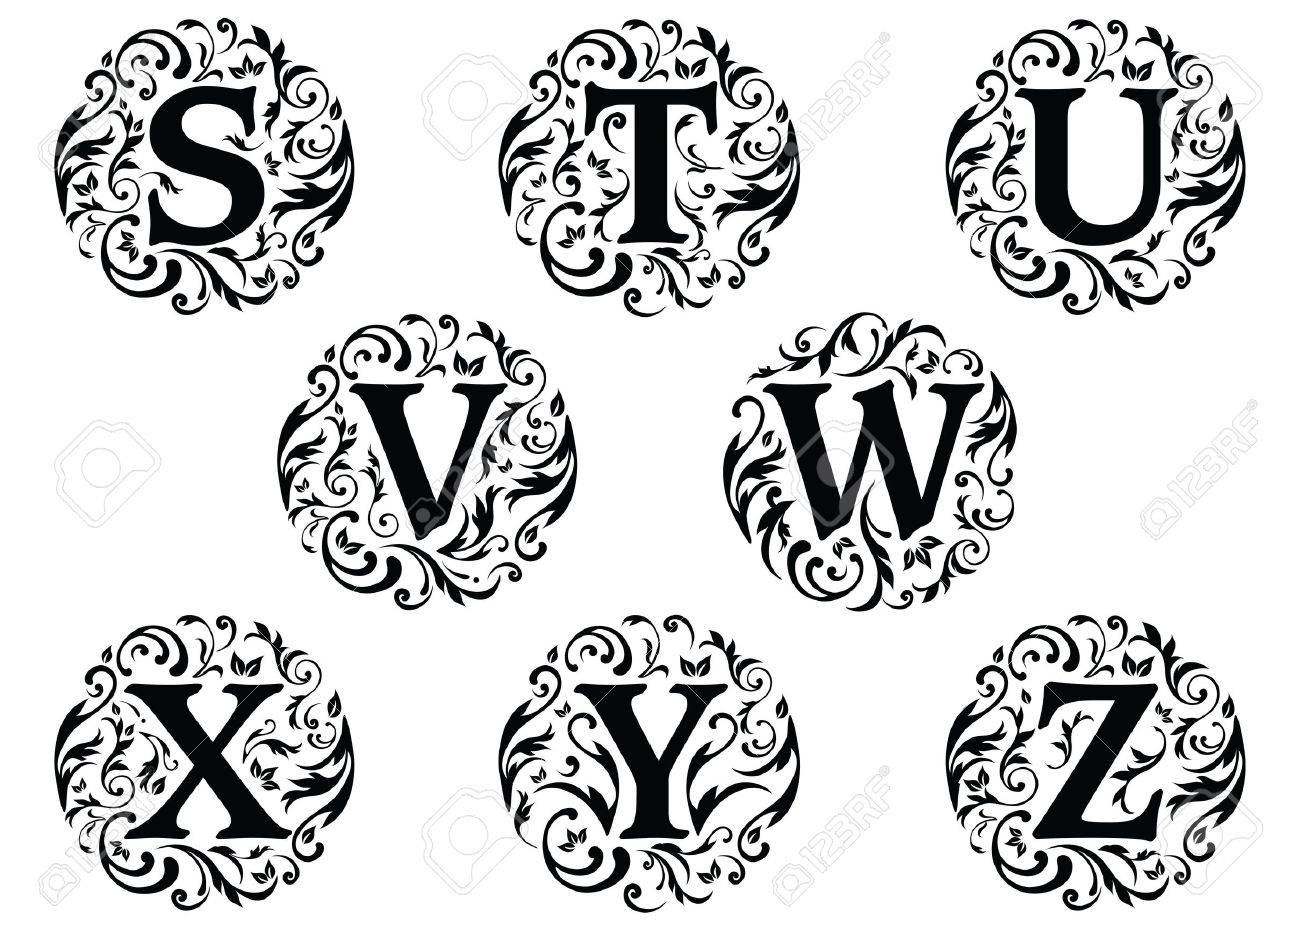 Vector illustration of alphabet letters with ornaments isolated on a white background Stock Vector - 9441344